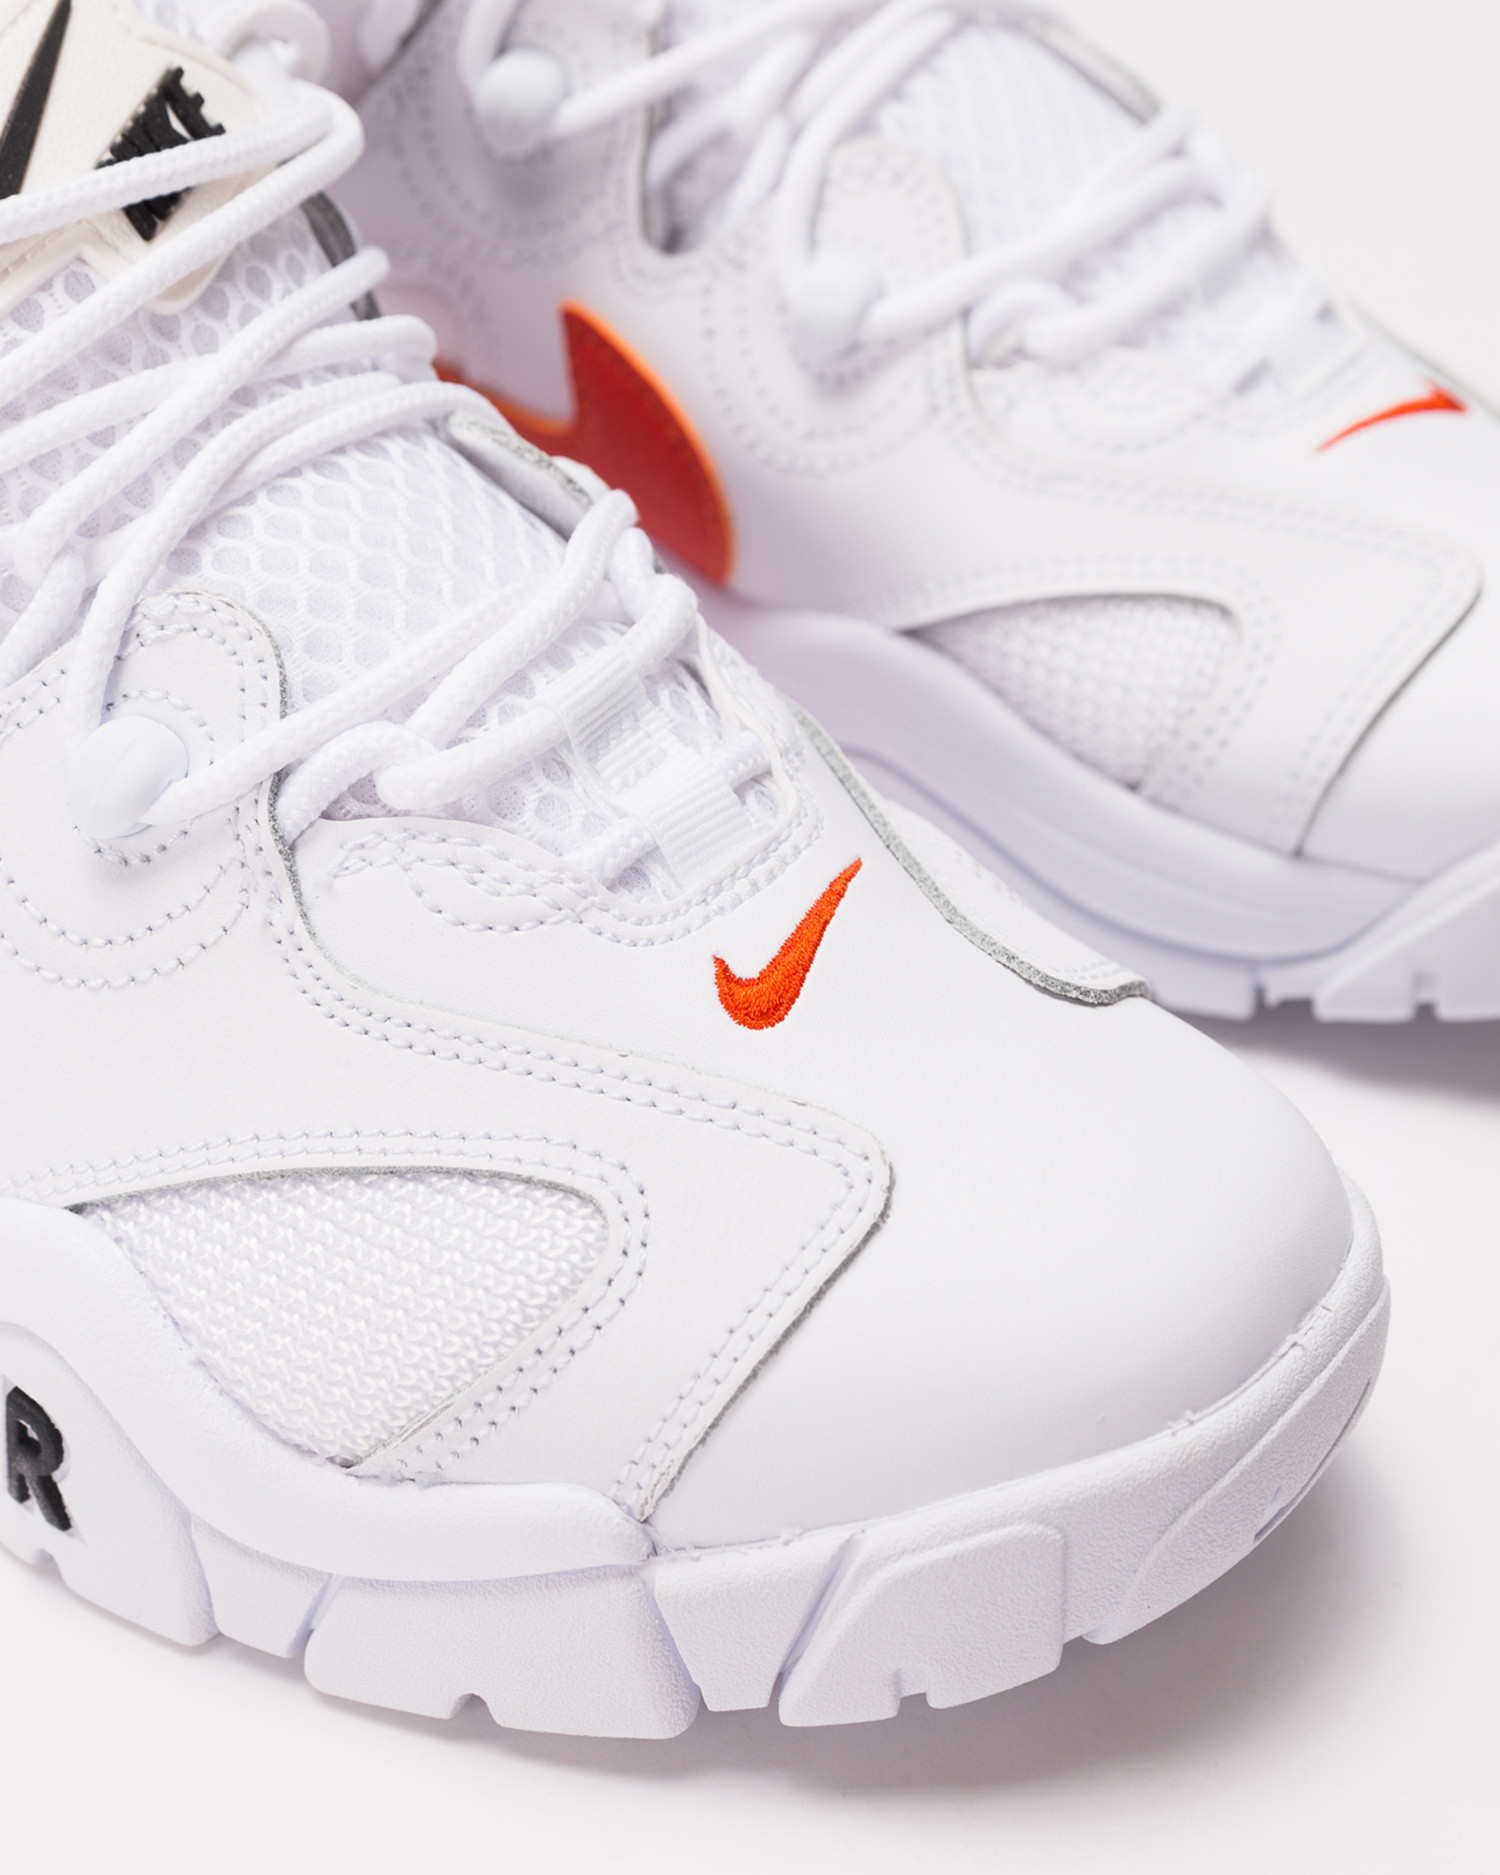 Nike Air Barrage Low White/Team Orange-Black-Black